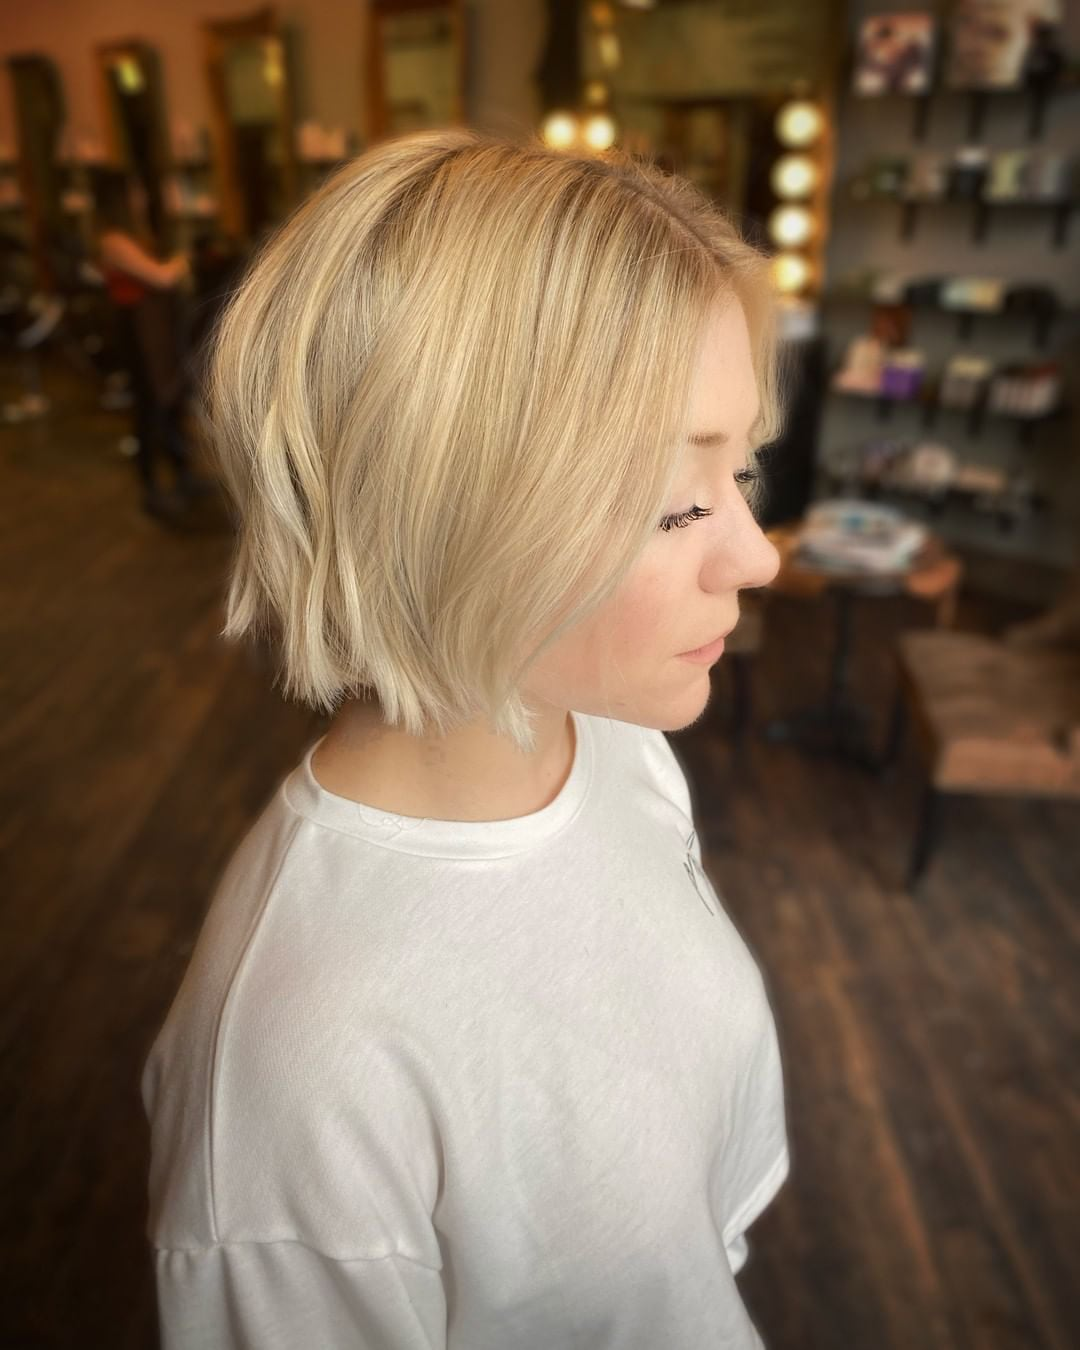 short bob hairstyles are in 2020 -03